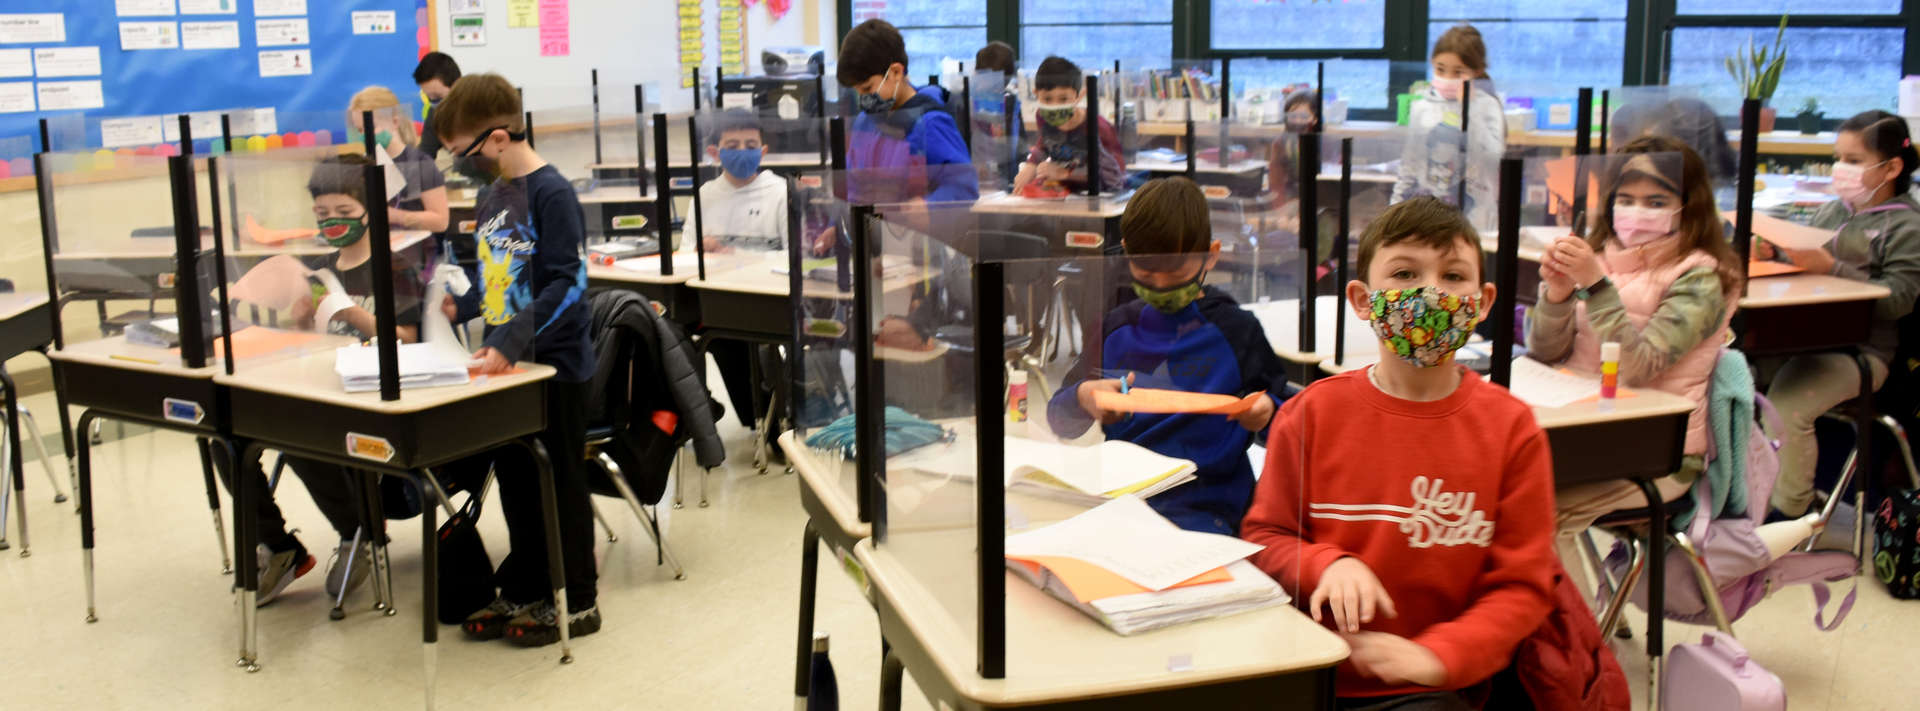 3rd Grade students wearing masks sitting at desks with barriers